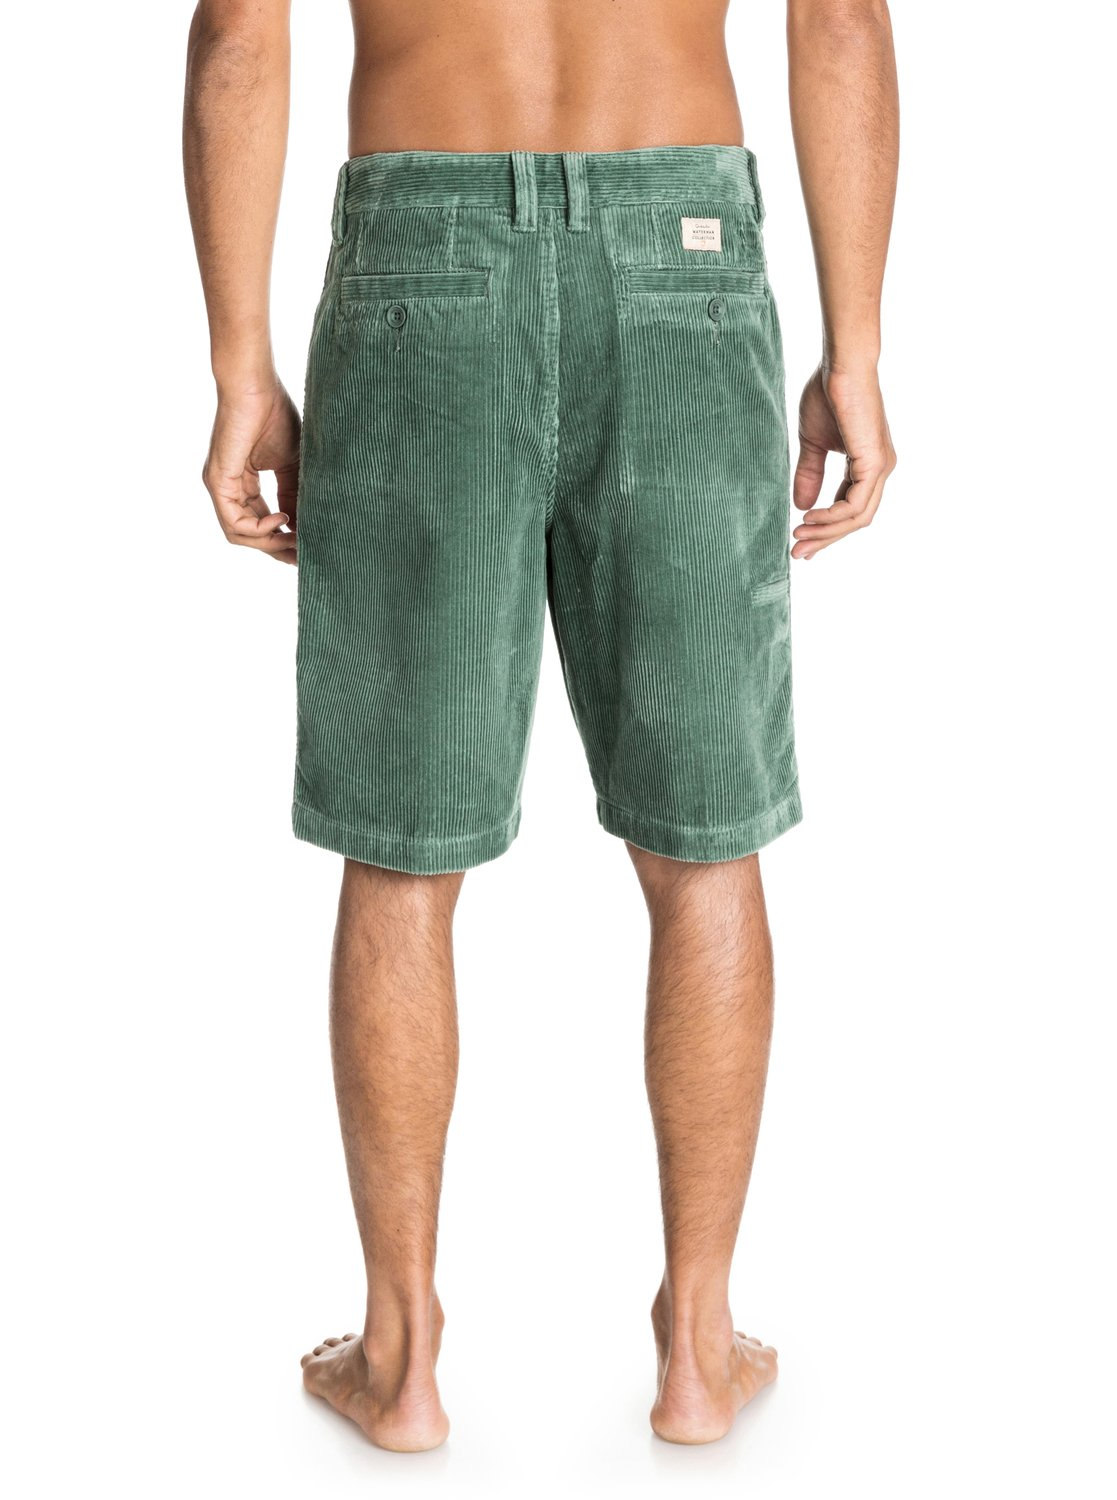 Find great deals on eBay for mens corduroy shorts. Shop with confidence.